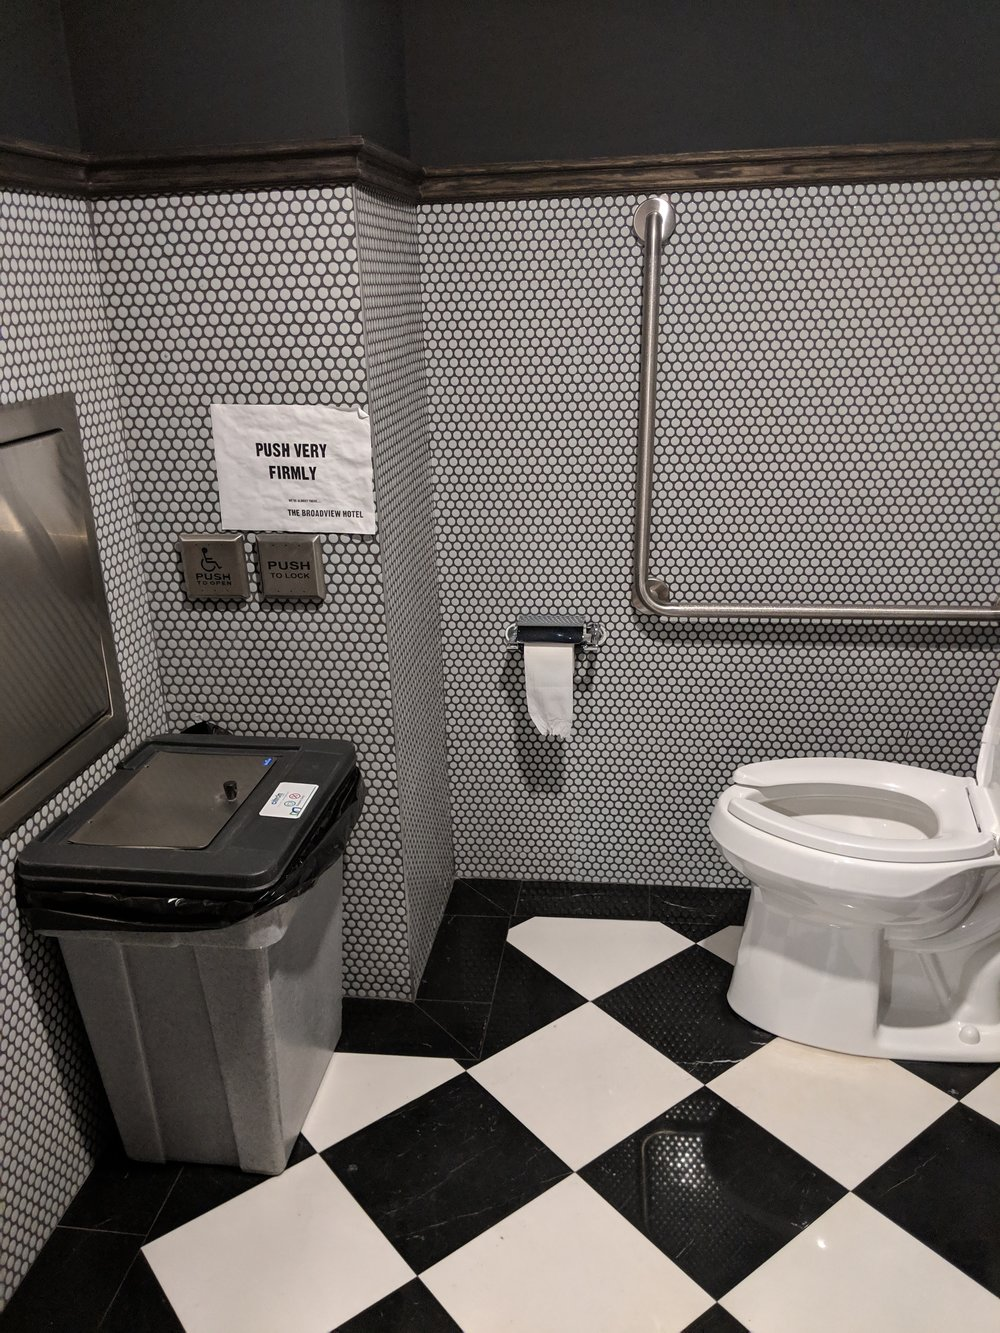 Picture of accessible washroom at Civic restaurant